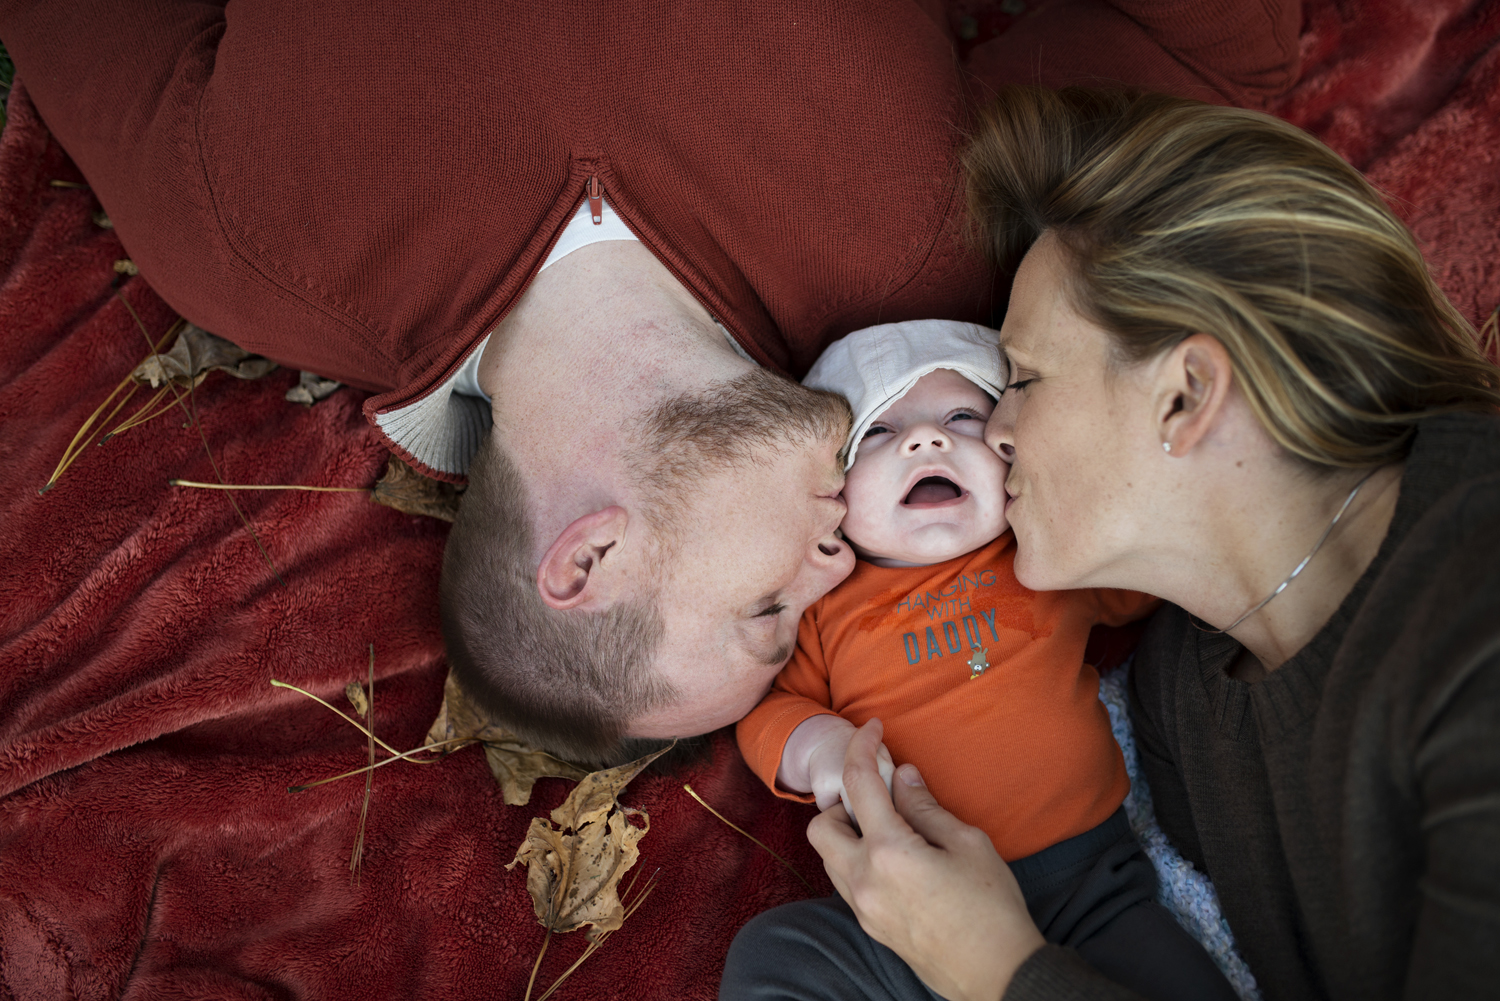 Cute family pictures on a red blanket in the fall